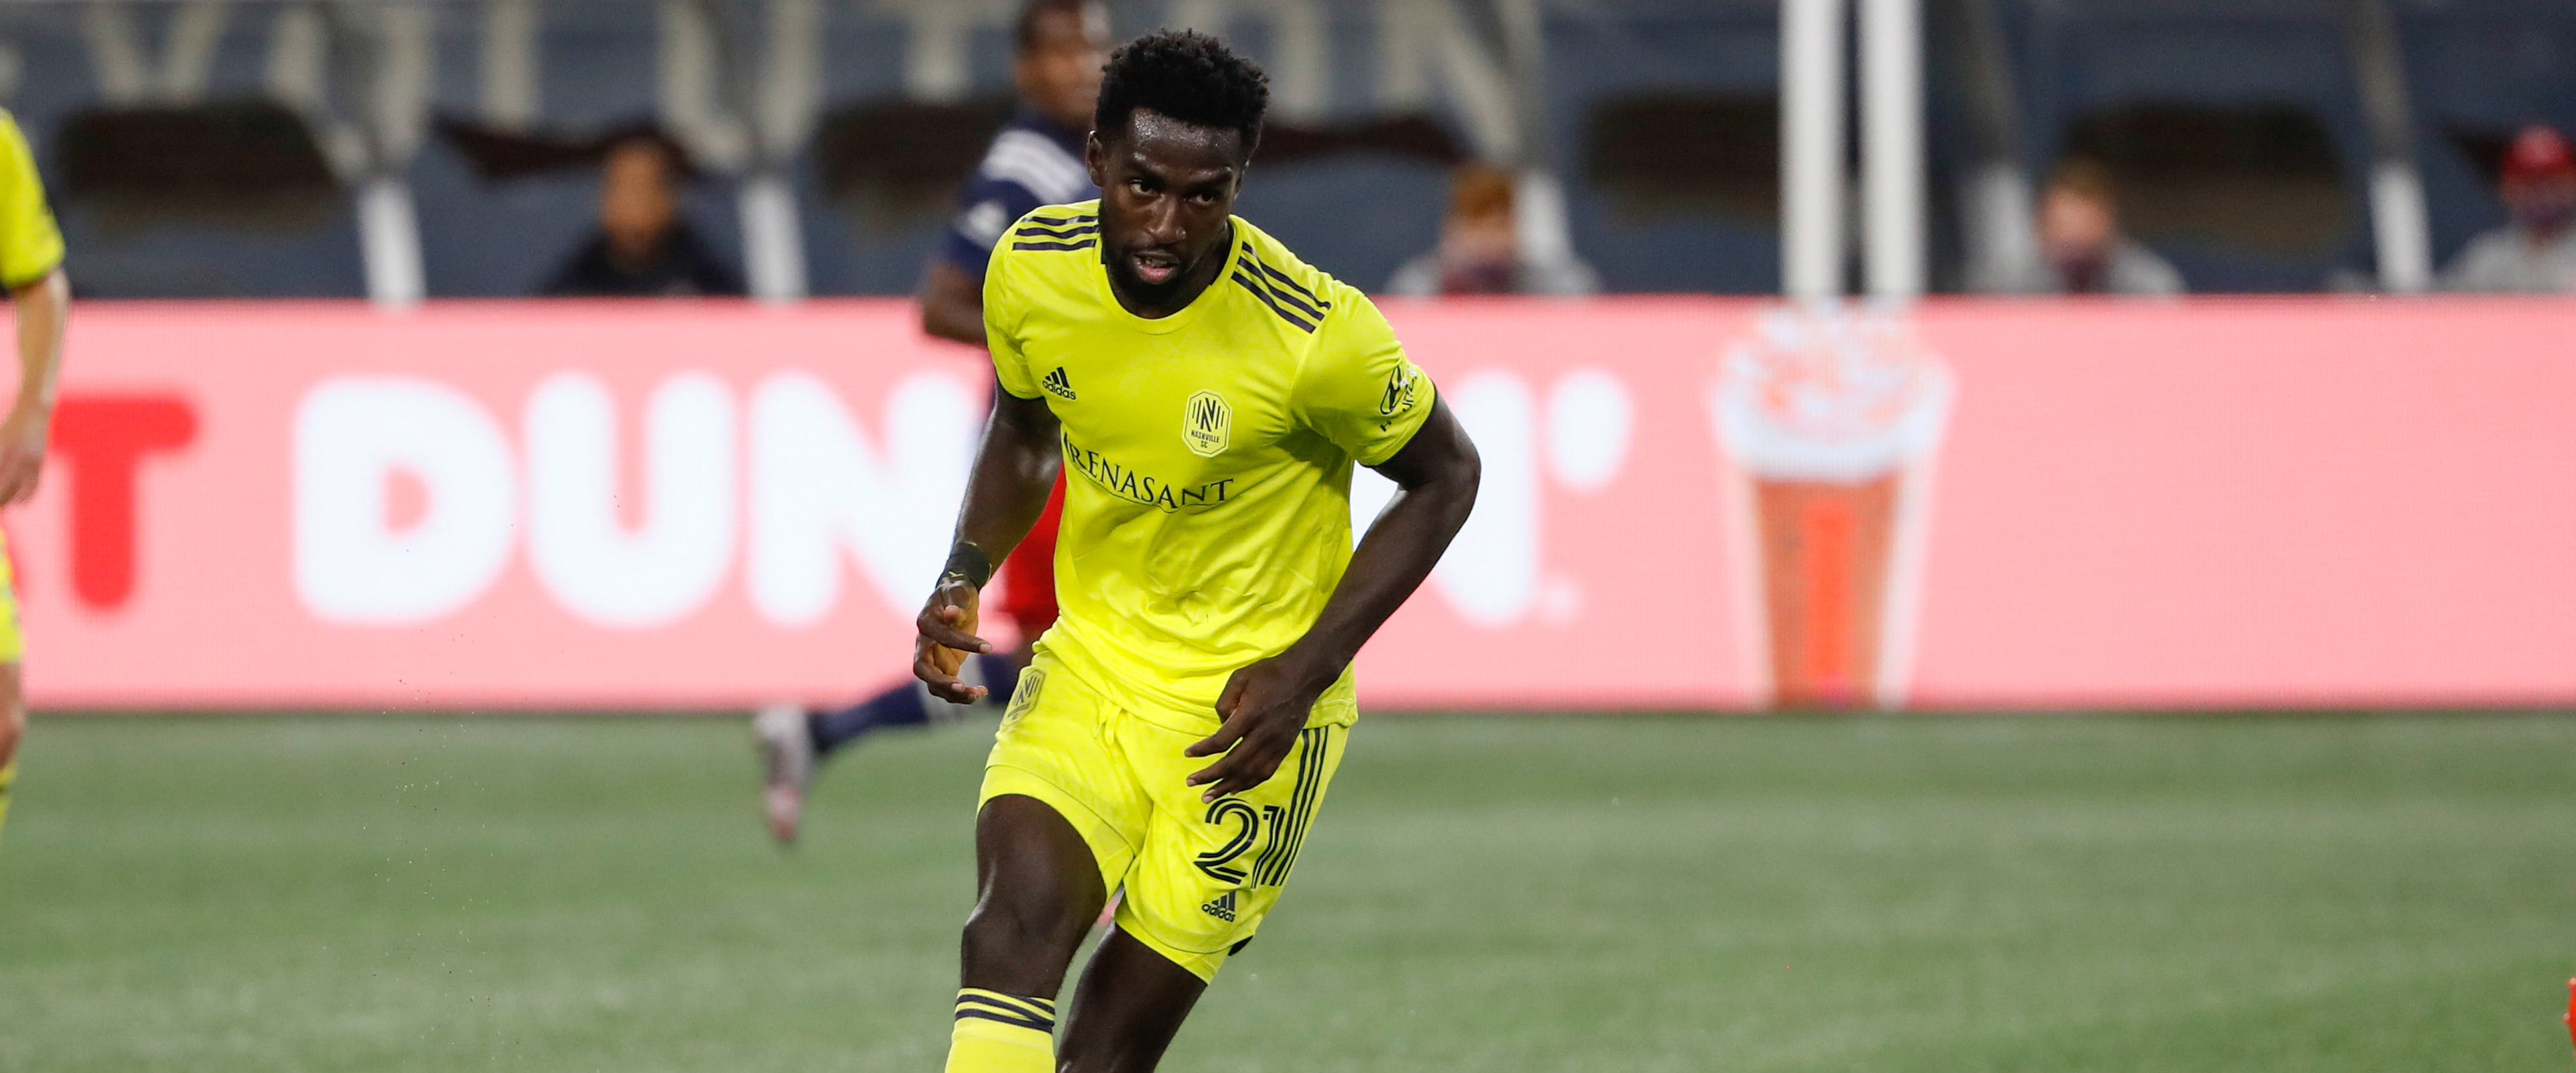 Nashville SC: Trading away Derrick Jones really bothers me